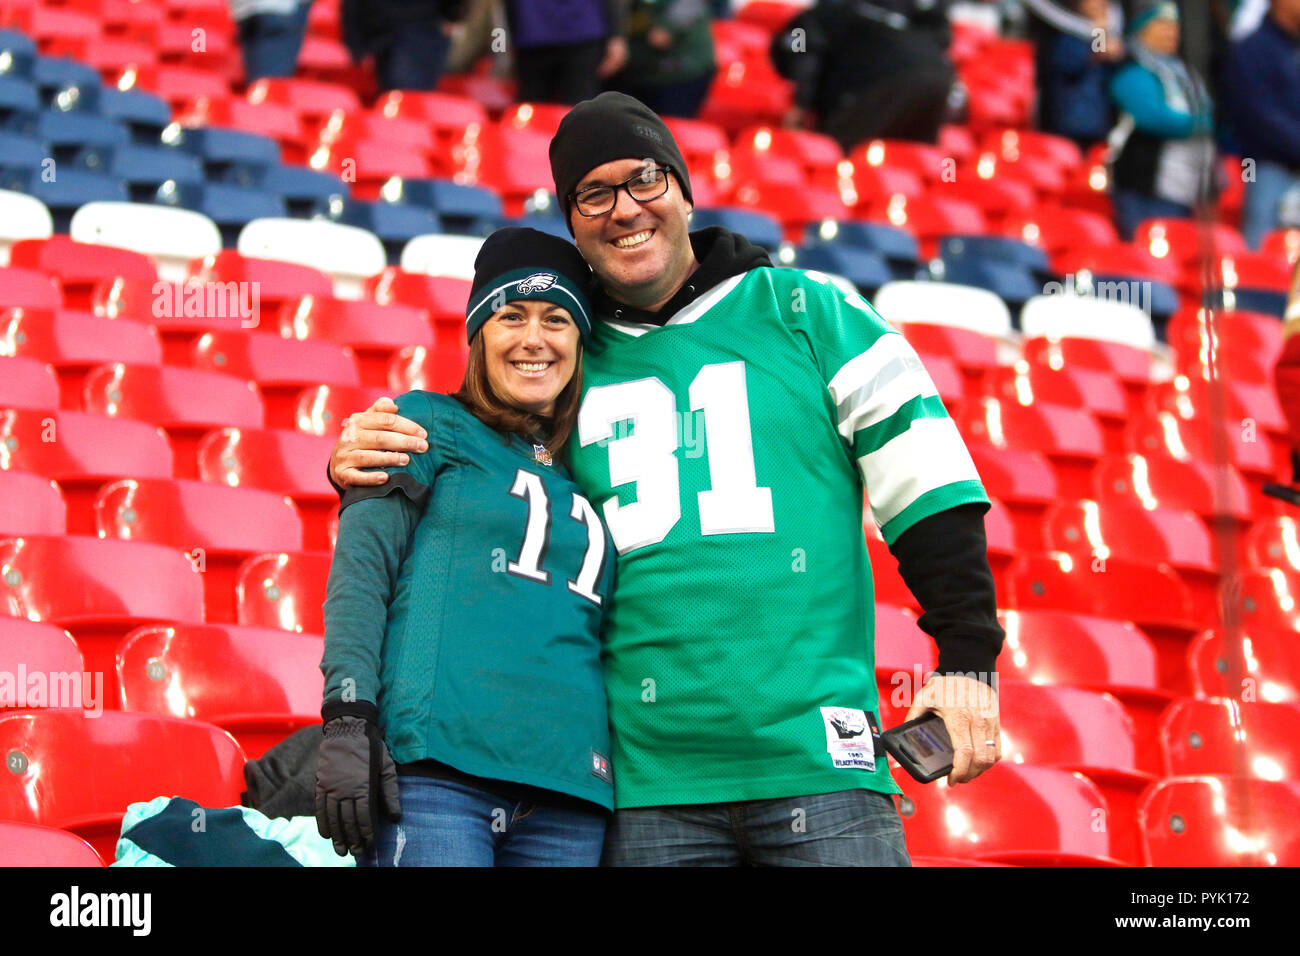 London, UK. 28 October 2018.   Fans  at the Eagles at Jaguars - credit Glamourstock Credit: glamourstock/Alamy Live News - Stock Image